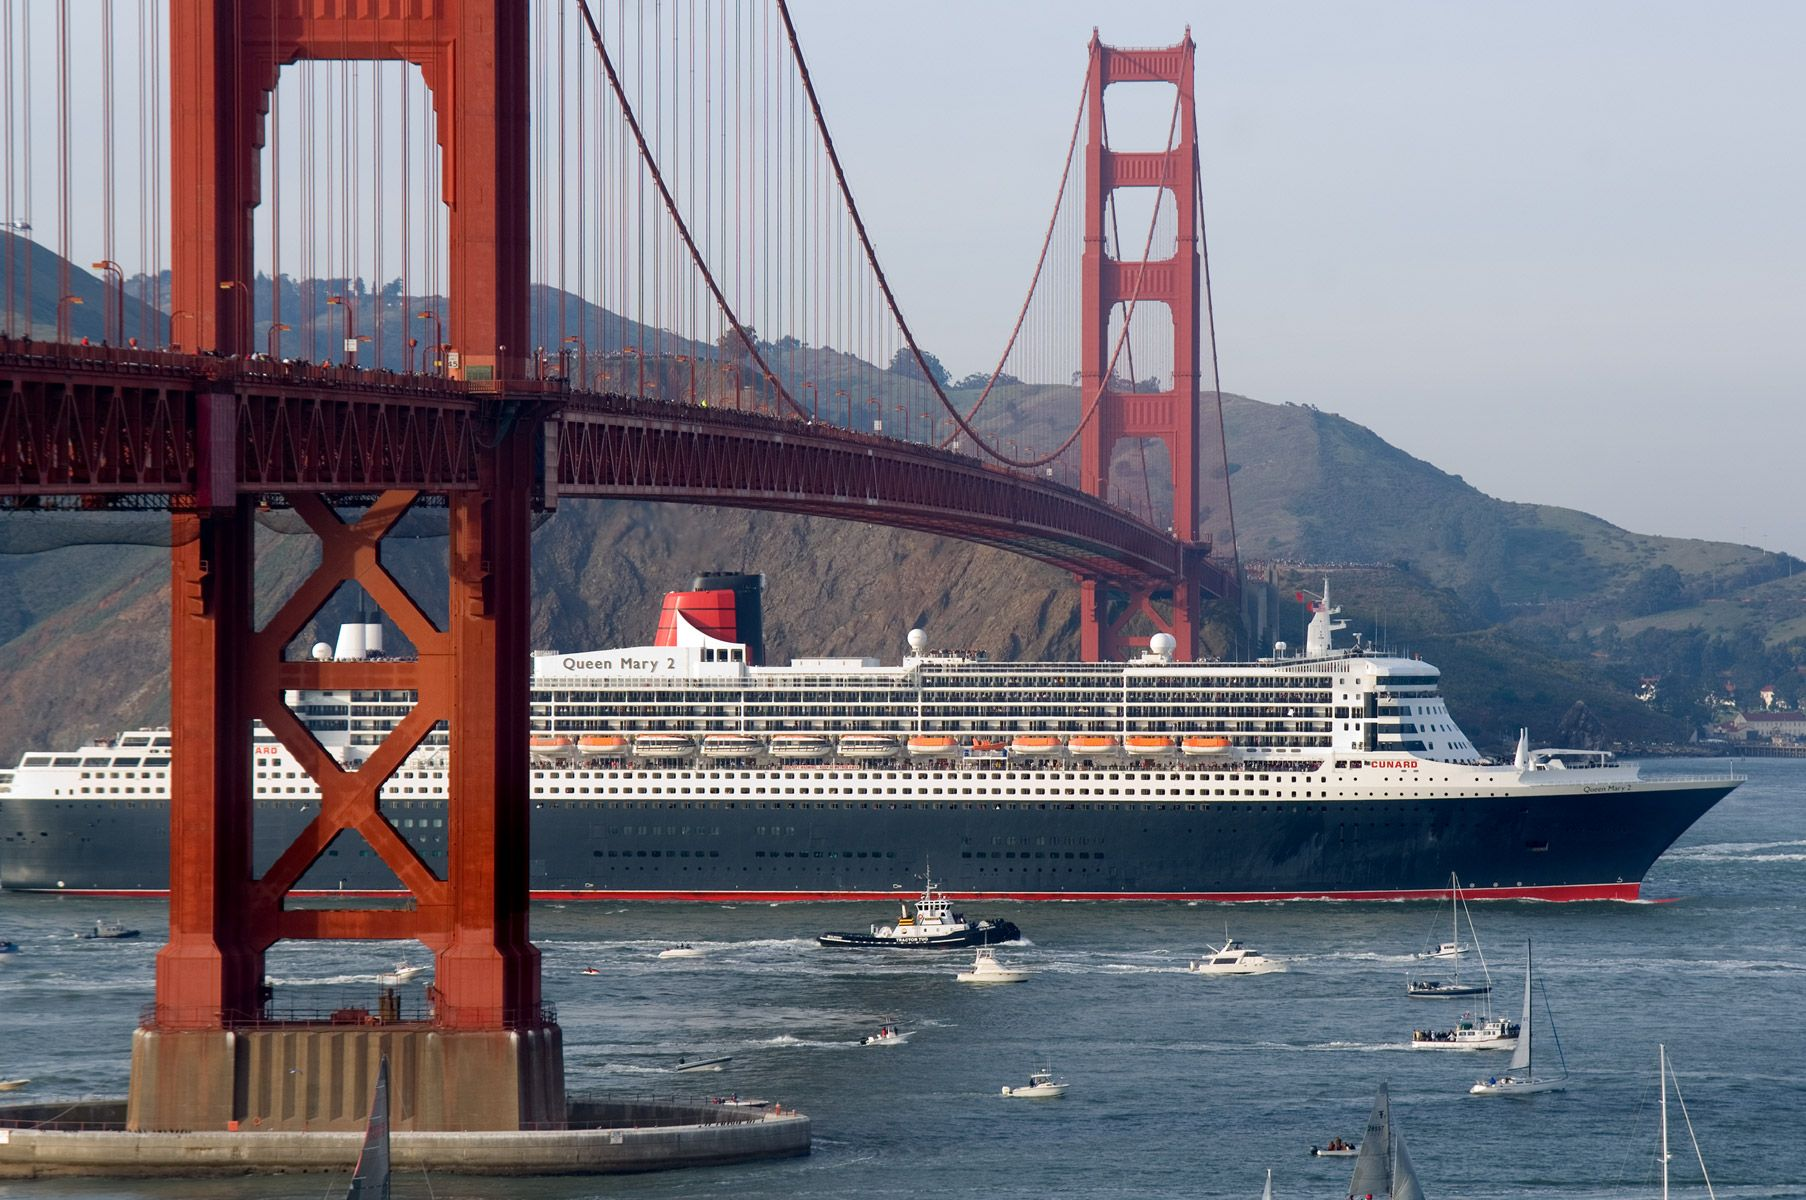 The RMS Queen Mary 2 arriving in